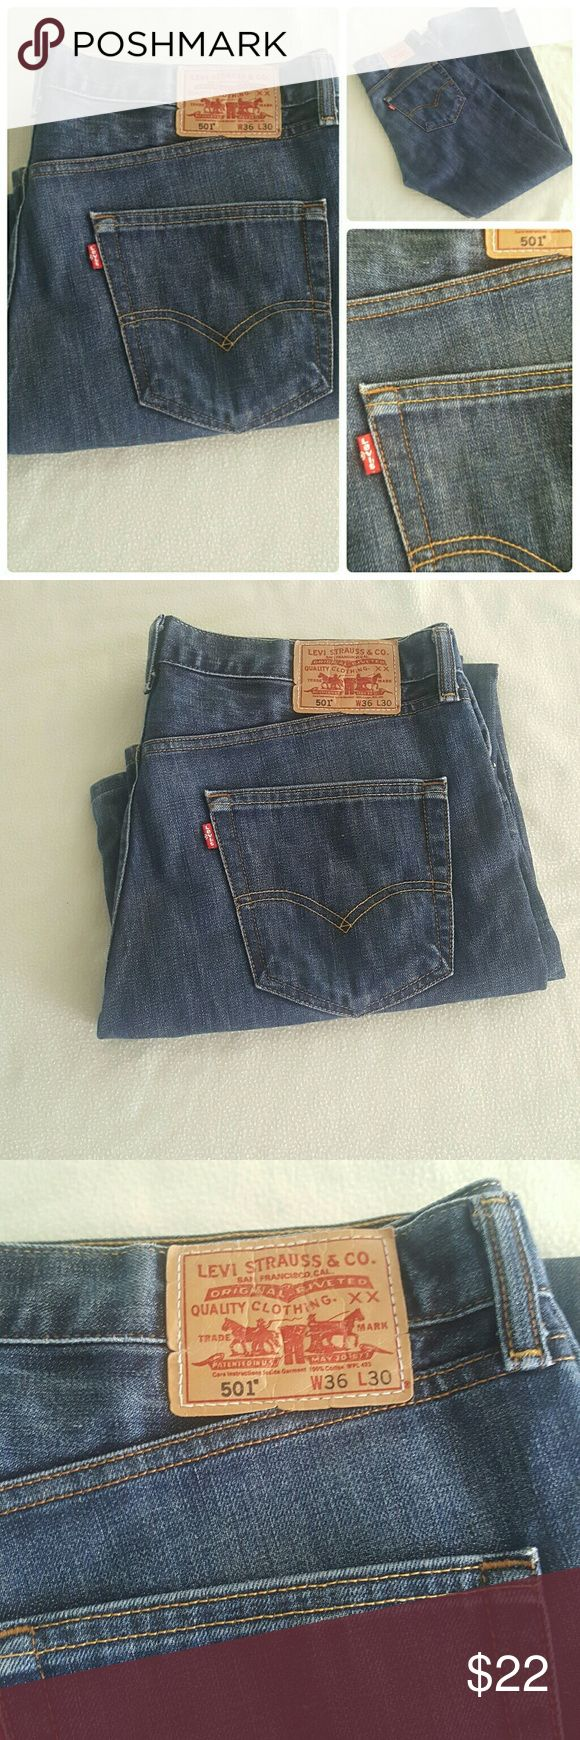 Levi's 501 button fly jeans Levi's 501 button fly jeans.  Slight wear. Measured waist 36 inches. Length 30 inches. See photos for wear Levi's Jeans Relaxed